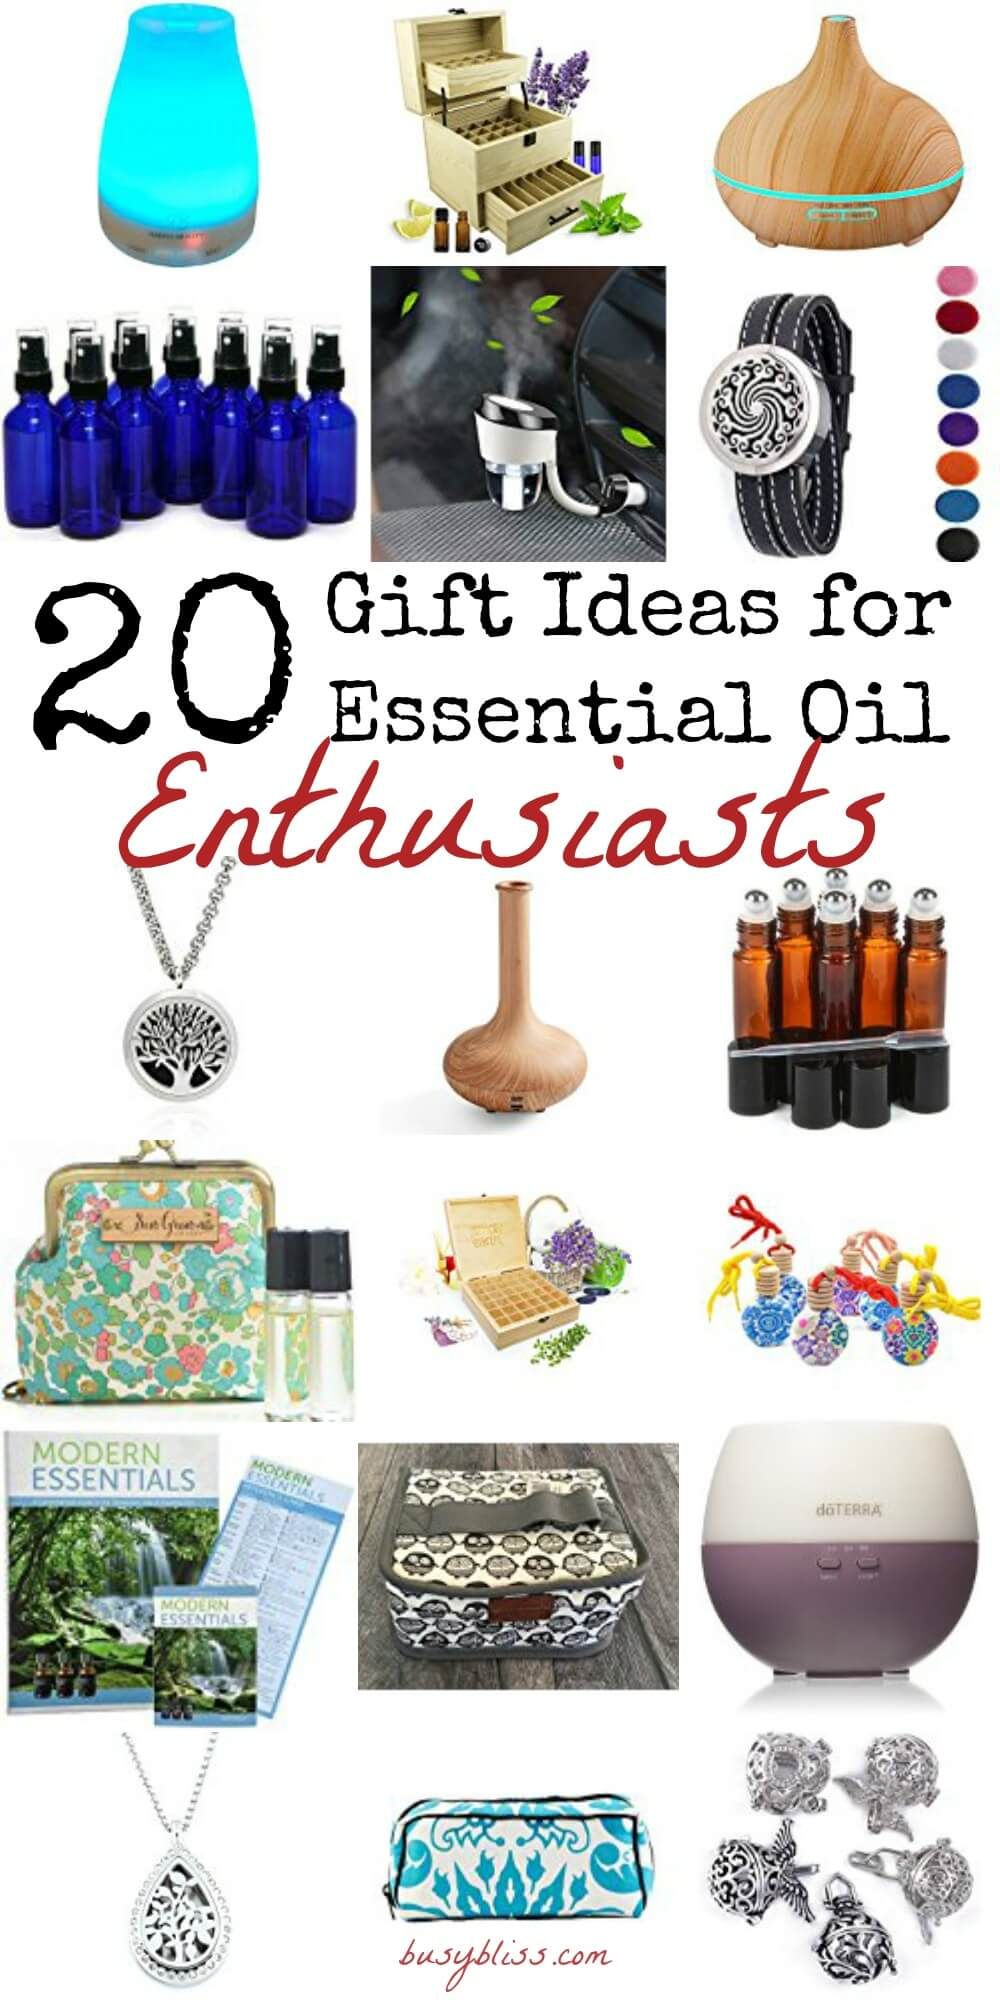 Doterra Christmas Gift Ideas.20 Gift Ideas For Essential Oil Enthusiasts Best Of Busy